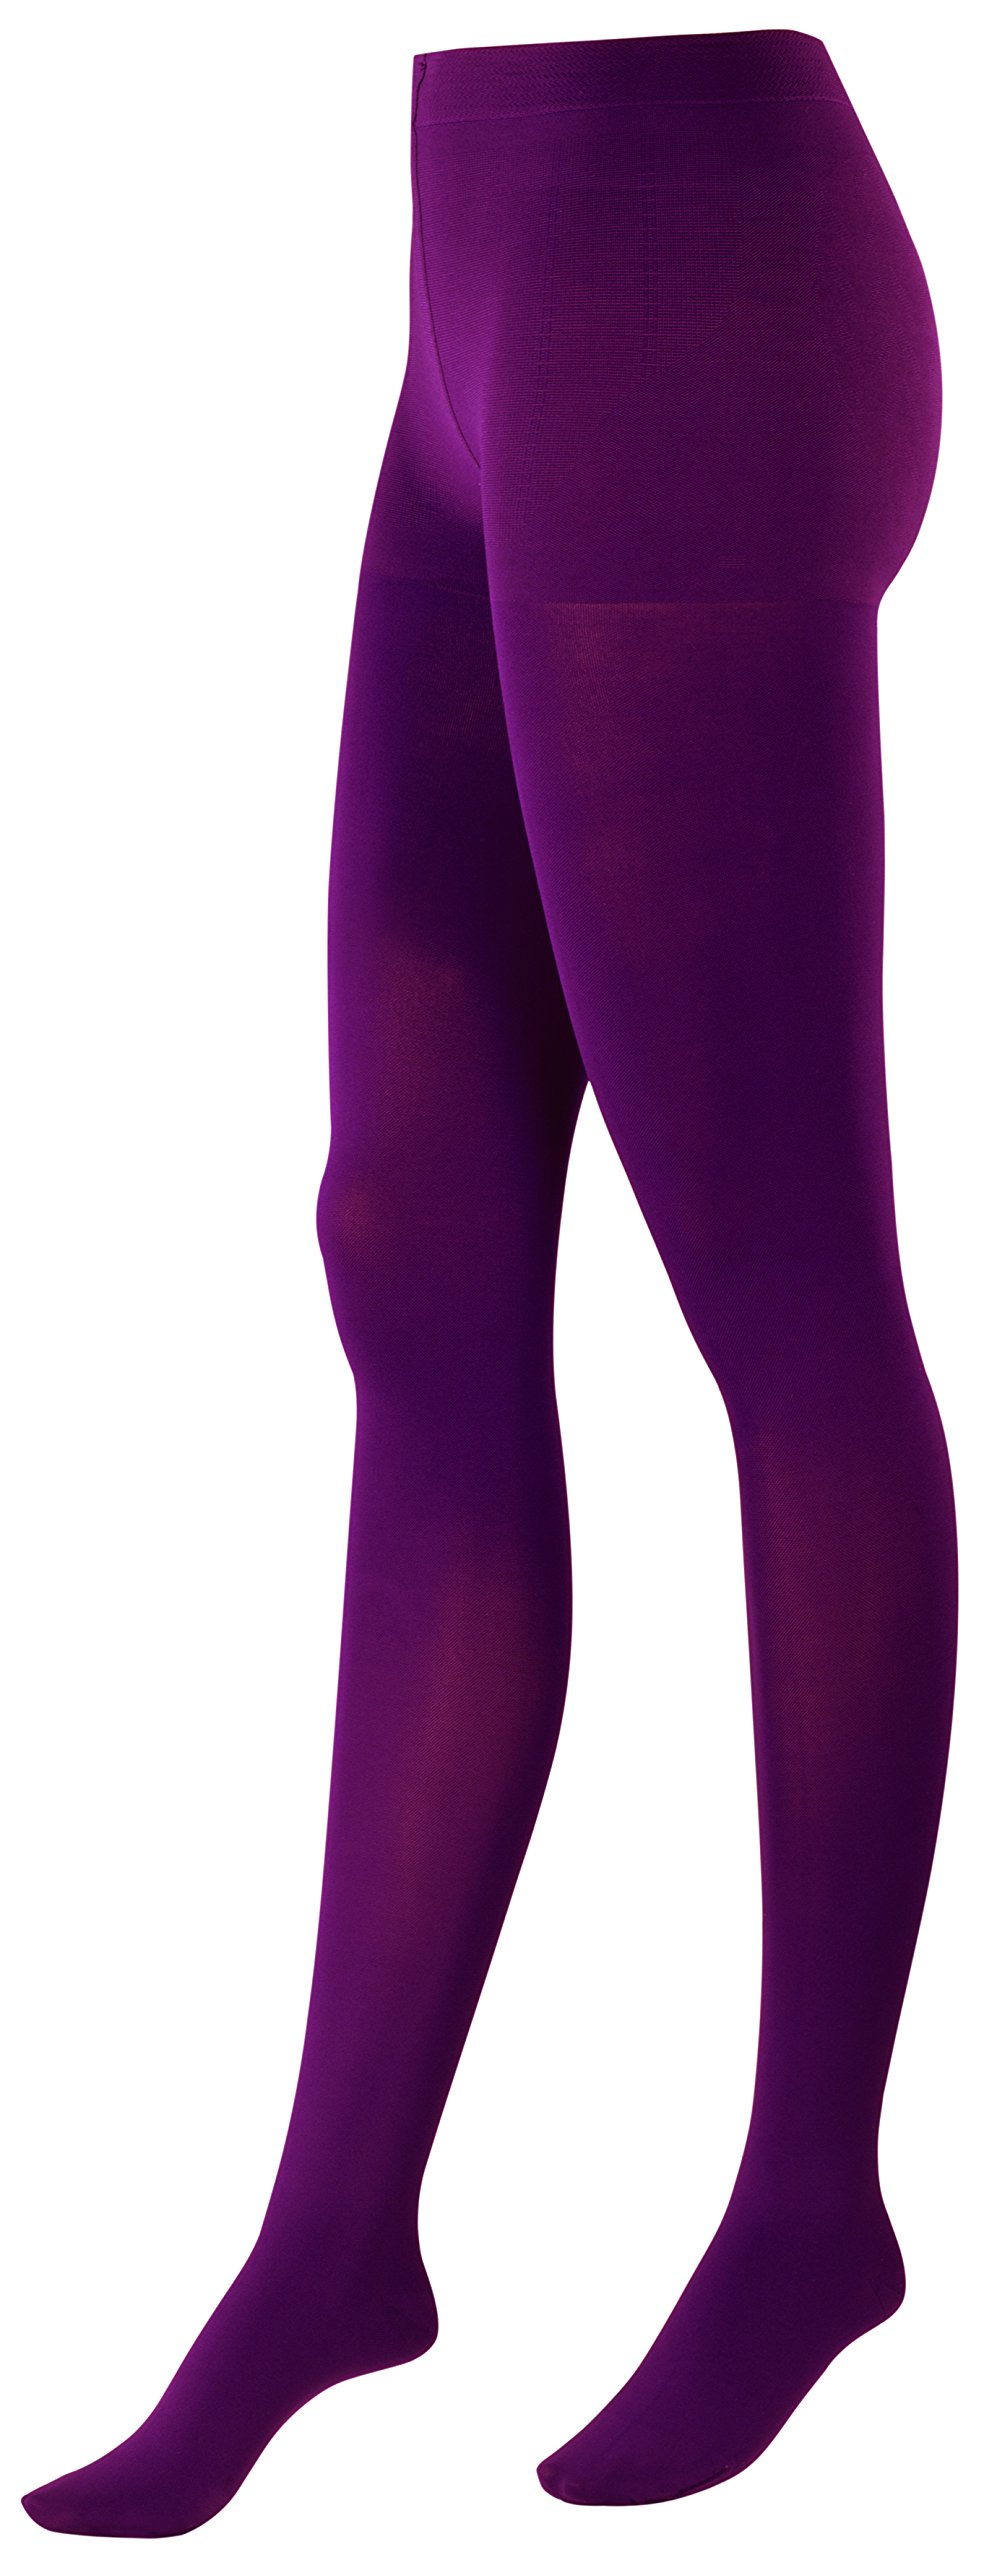 ITEM m6 Women's Energizing and Shaping Opaque Compression Tights, Bordeaux, Small, Tall